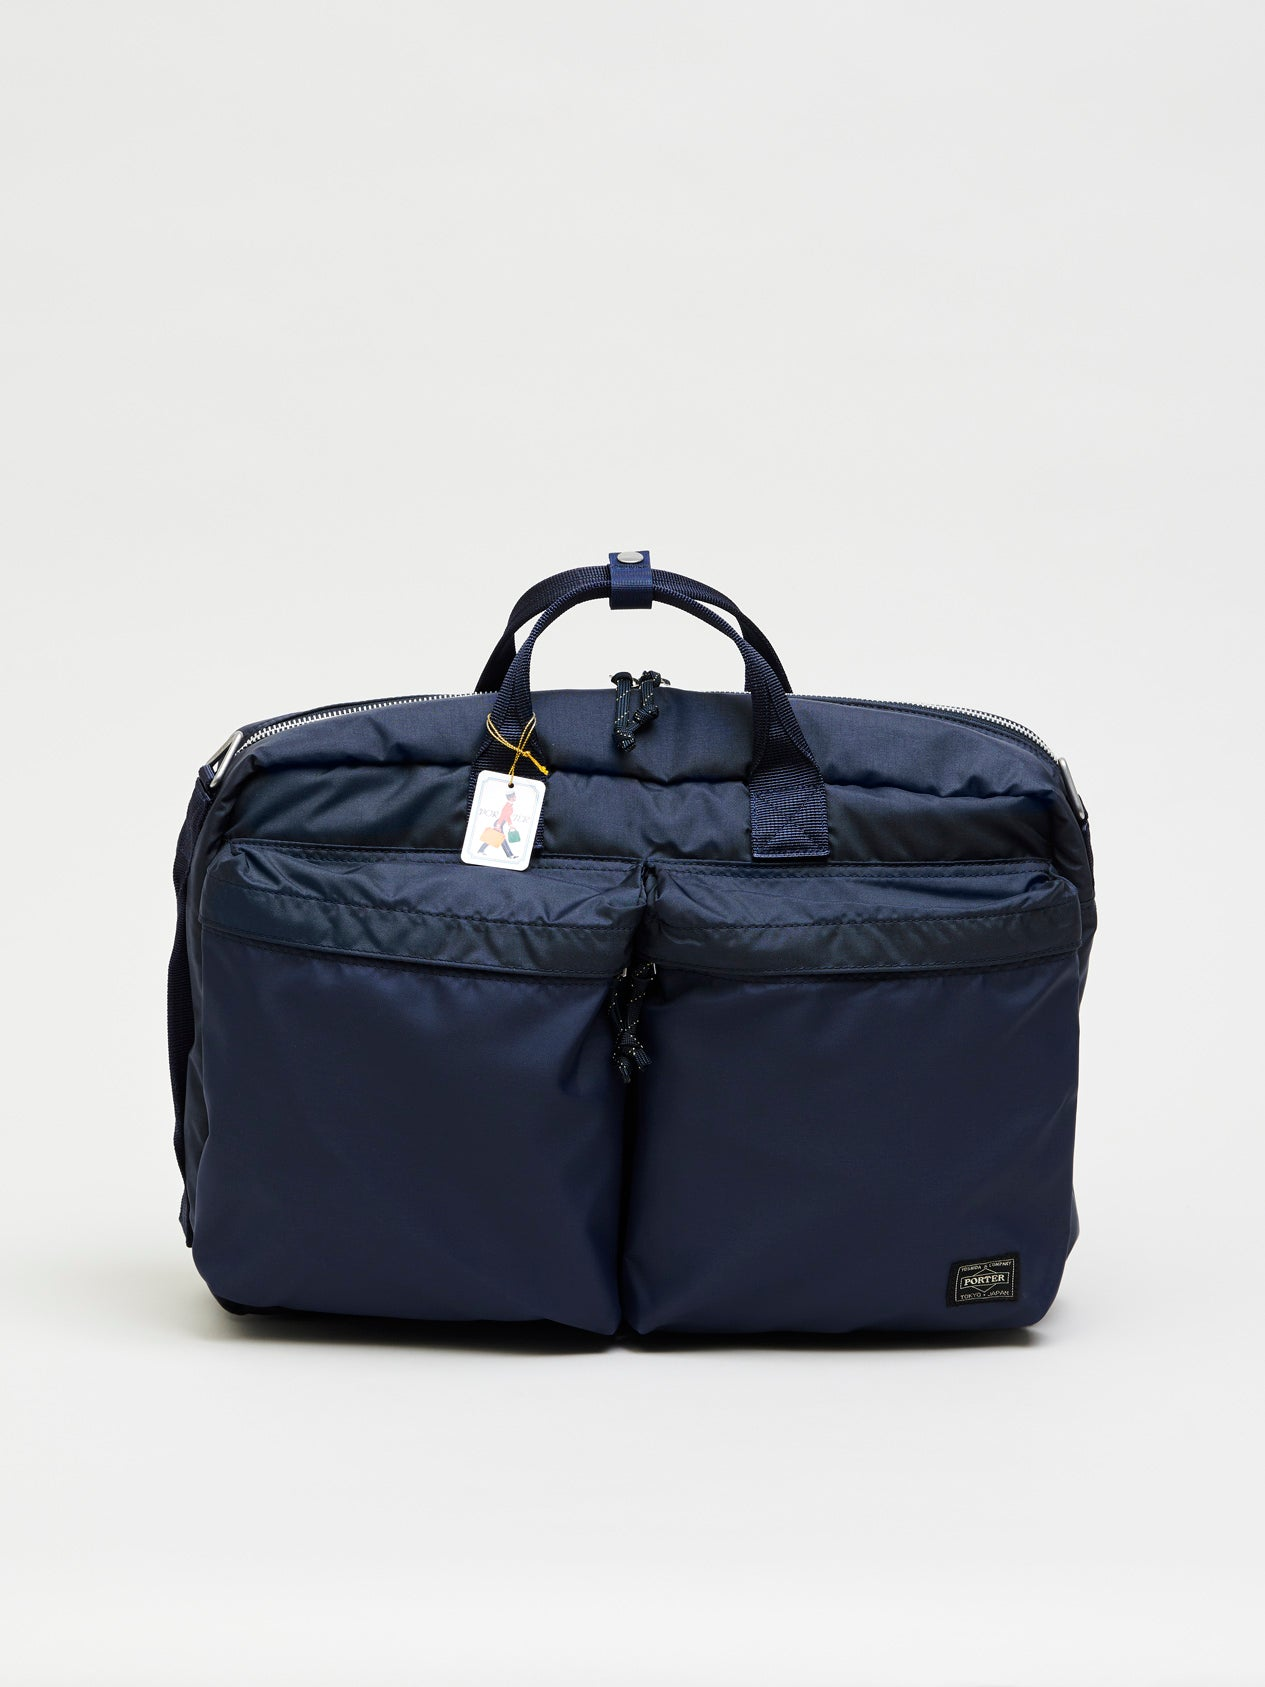 Force 3way Briefcase, Navy Blue - Goods